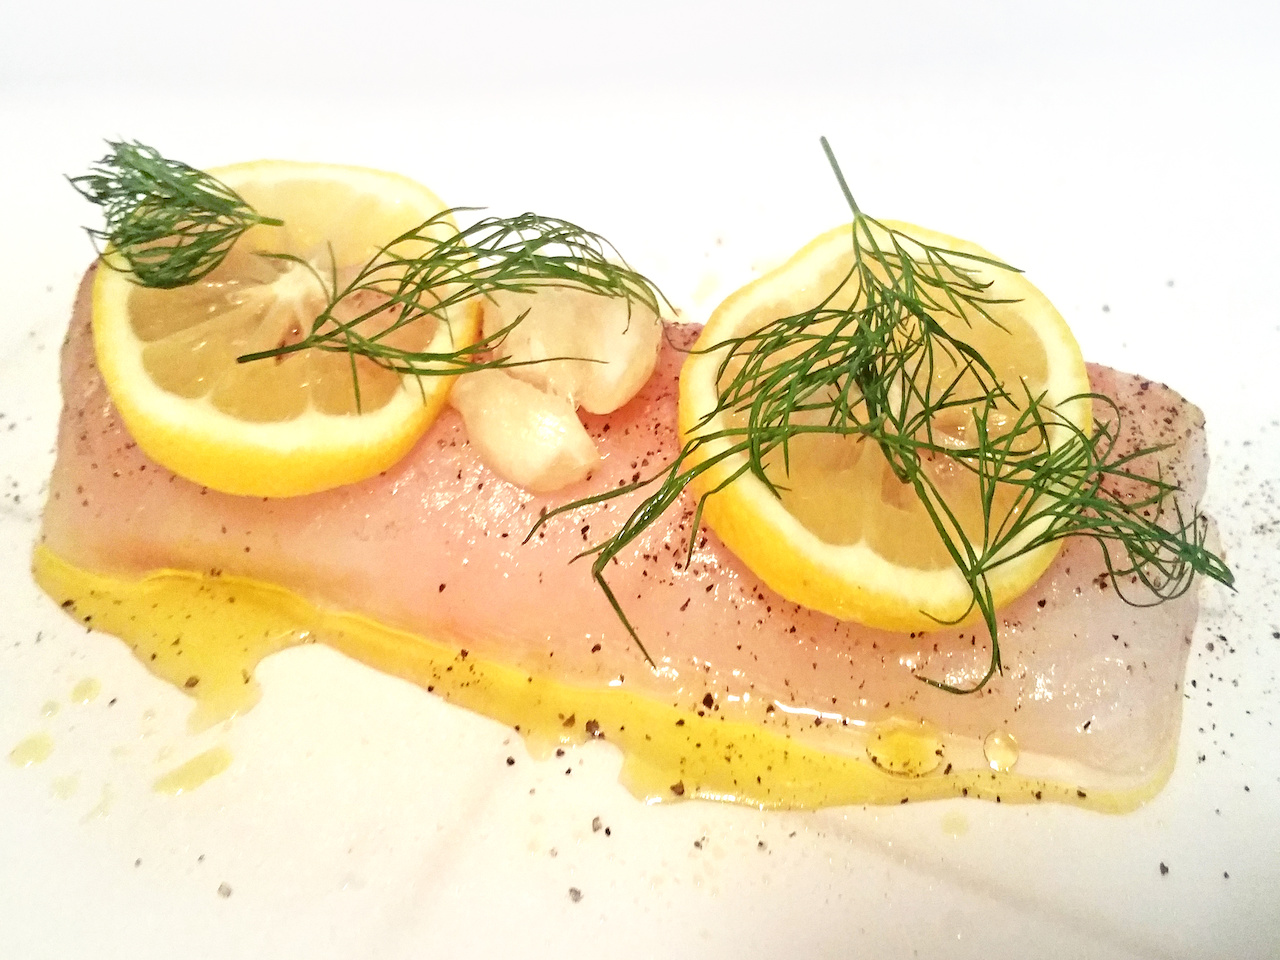 Here, we're preparing the cod atop parchment paper with olive oil, salt, pepper, fresh dill, garlic and lemons before we close up the parchment pouches. The delicate cod will steam inside the pouches for a truly aromatic dish.